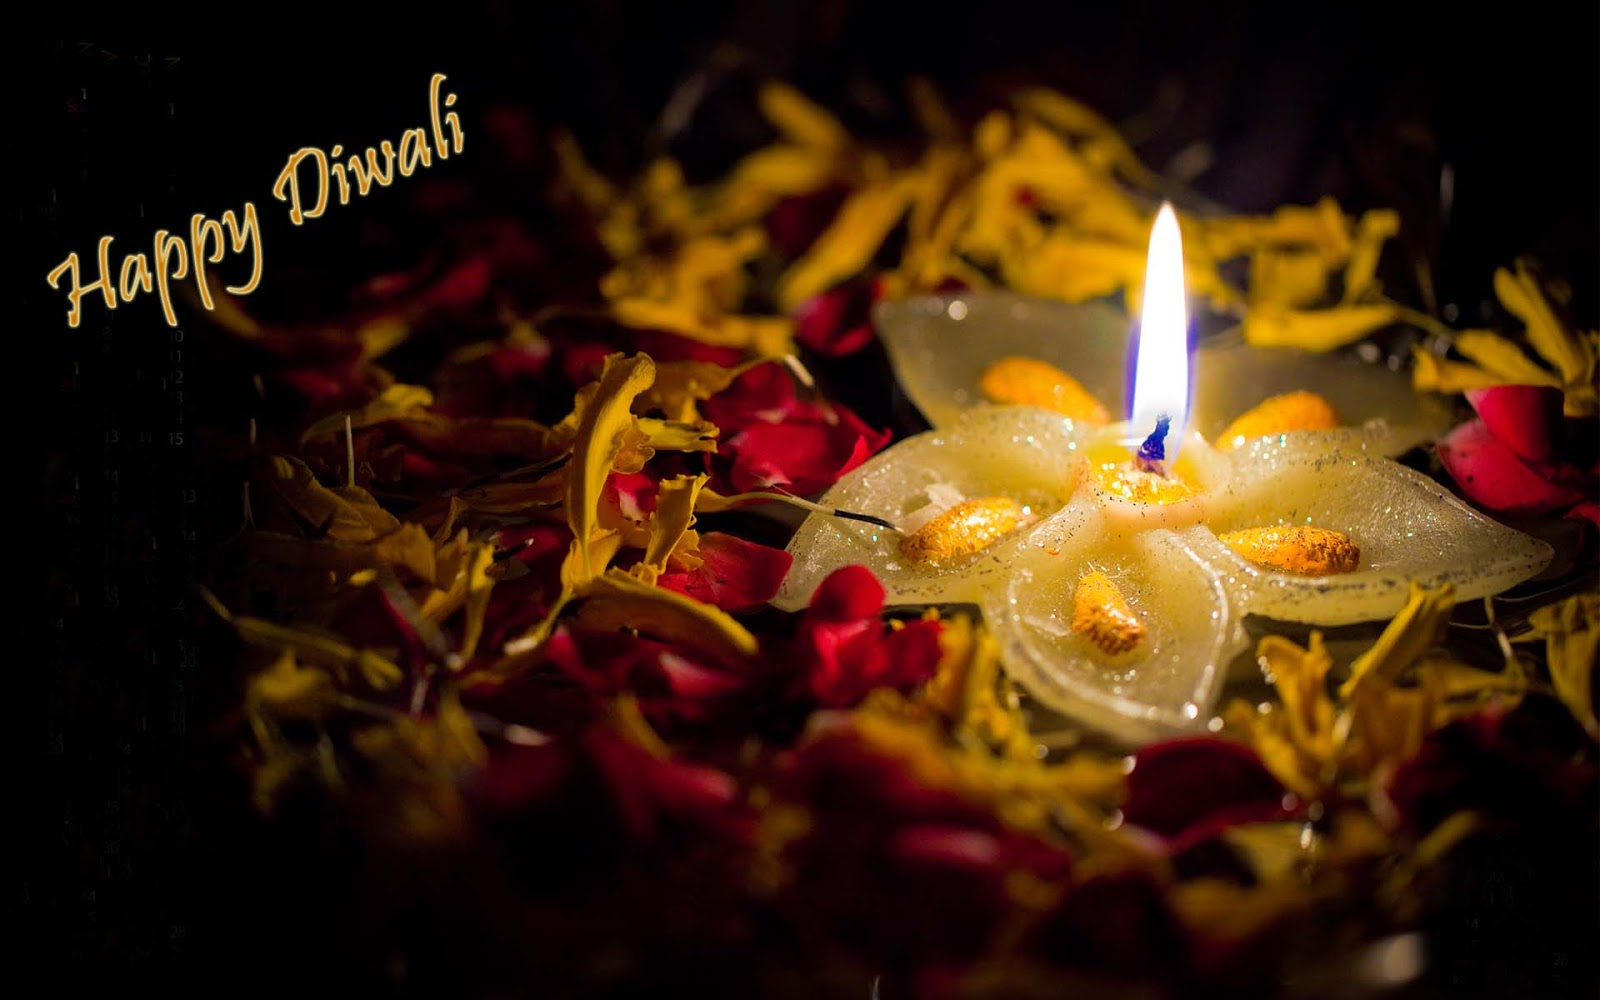 Latest Diwali wallpapers free of 2013 Love - Images of love